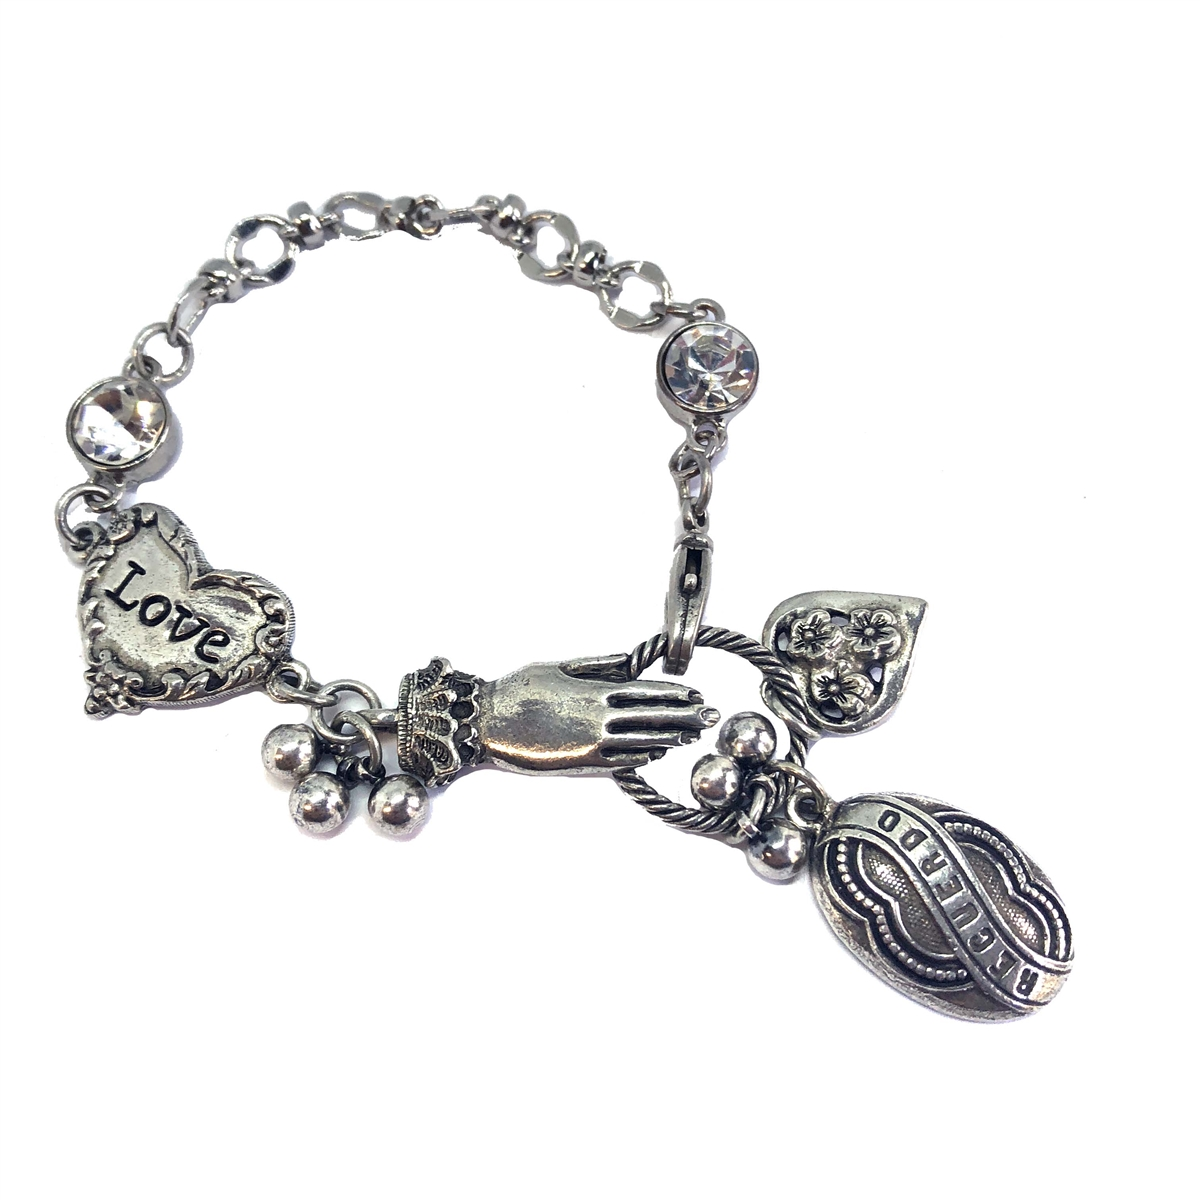 Lace Cuffed Hand And Charm Bracelet Old Silver 1928 Jewelry Parts Spanish Recuerdo Memory Heart